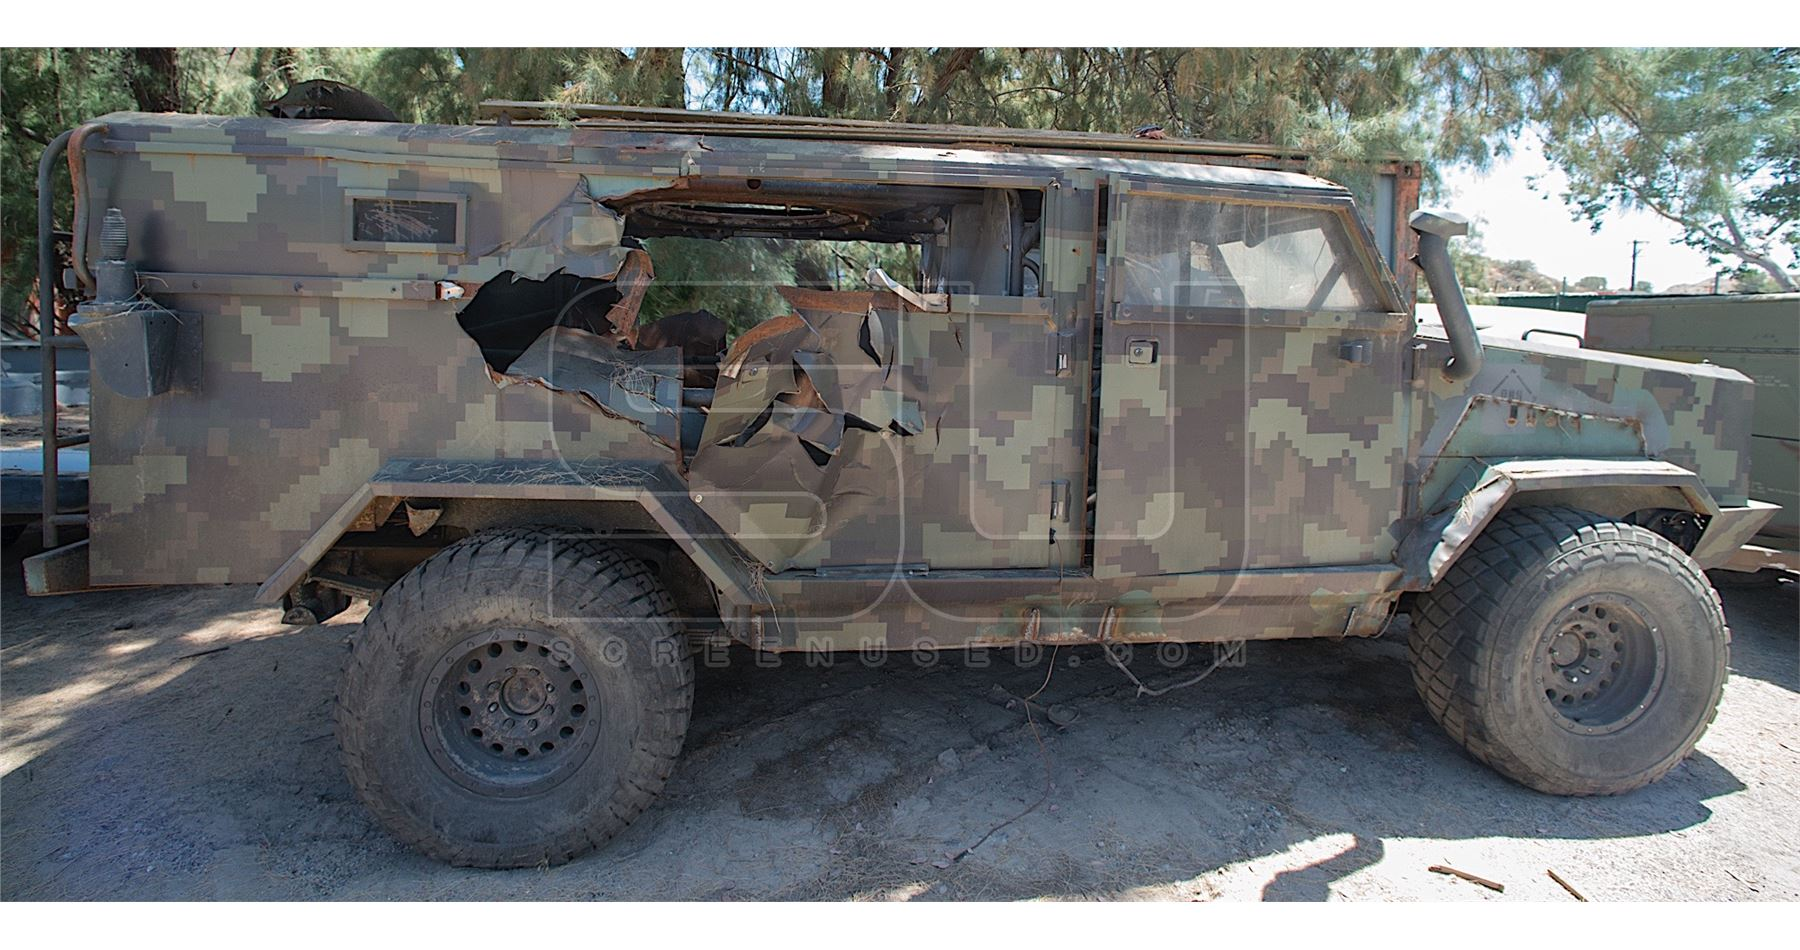 Sicario: Day of the Soldado - Hummer Type Vehicle | hummer type vehicle